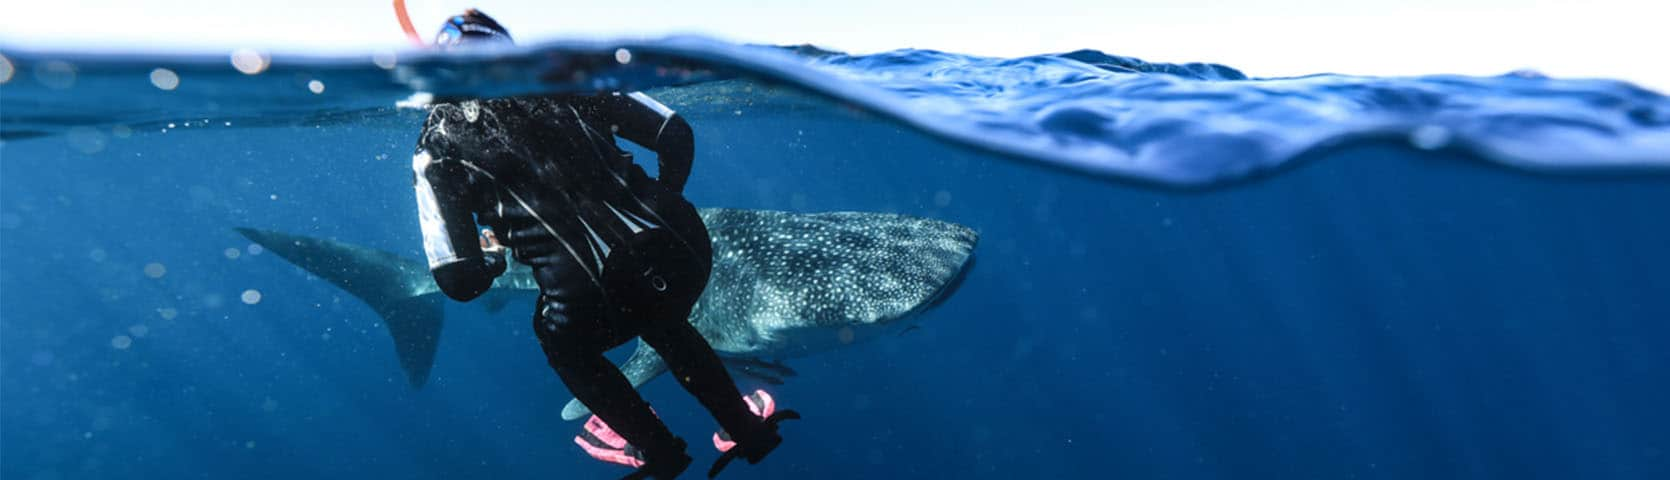 Swim with whale sharks at Ningaloo Reef with Coral Expeditions